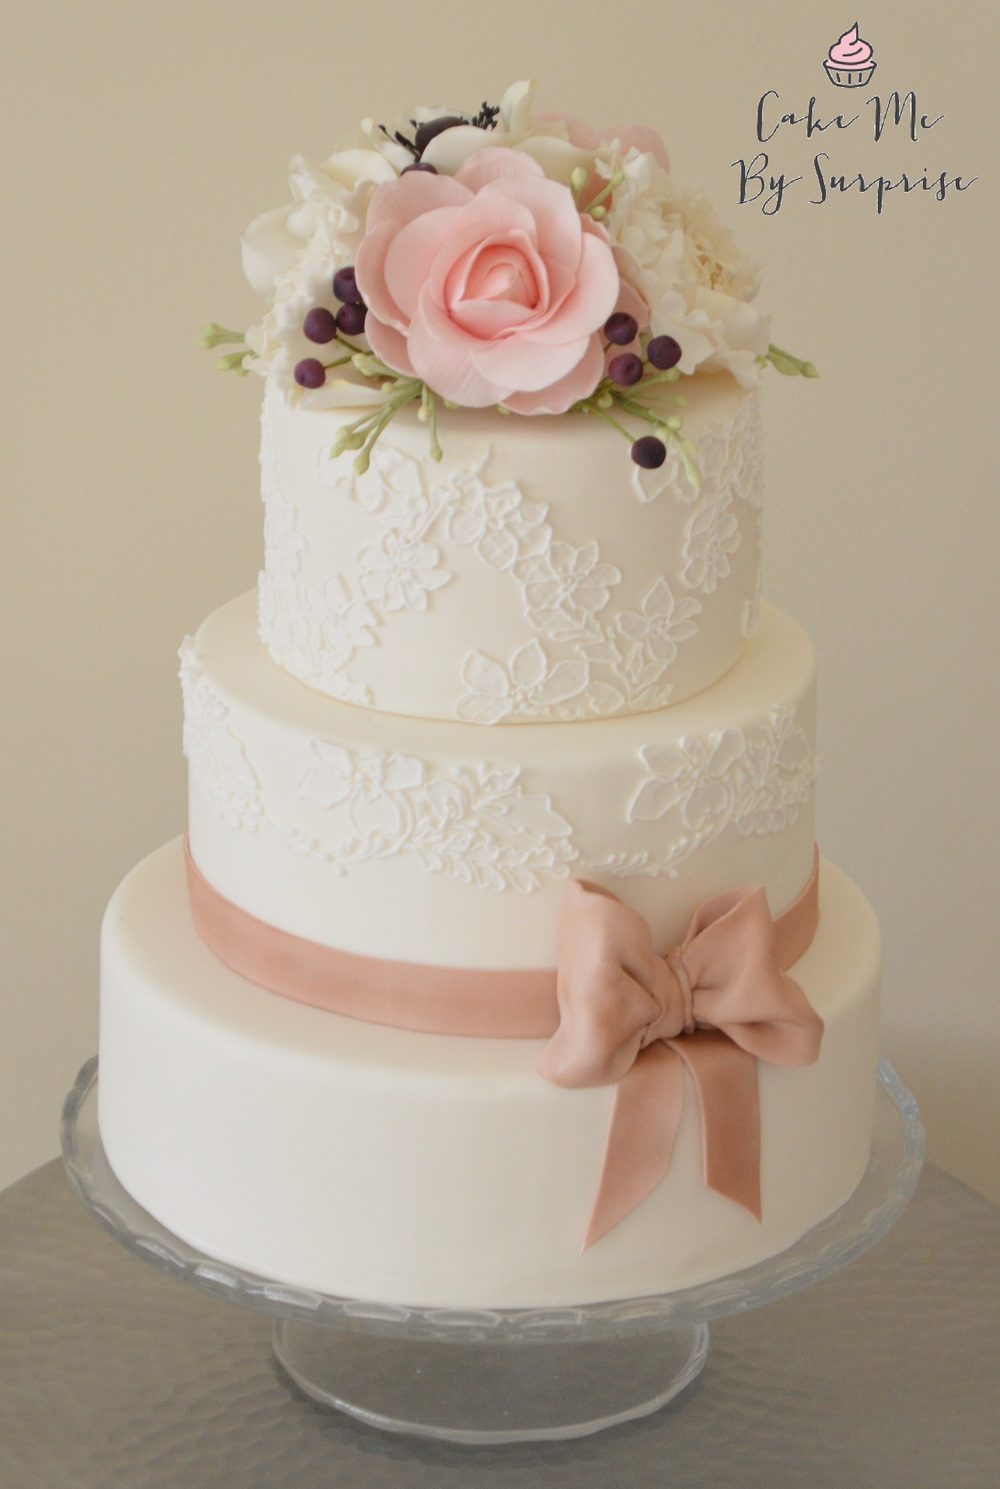 A Touch of Mink Complete your wedding celebration with this elegant cake. With its name derived from the mink colored satin ribbon that finishes this lace inspired cake. The top of the cake is finished with sugar crafted Camellias, Peonies, Anemones, Berries and Foliage.  Serves 46 £390